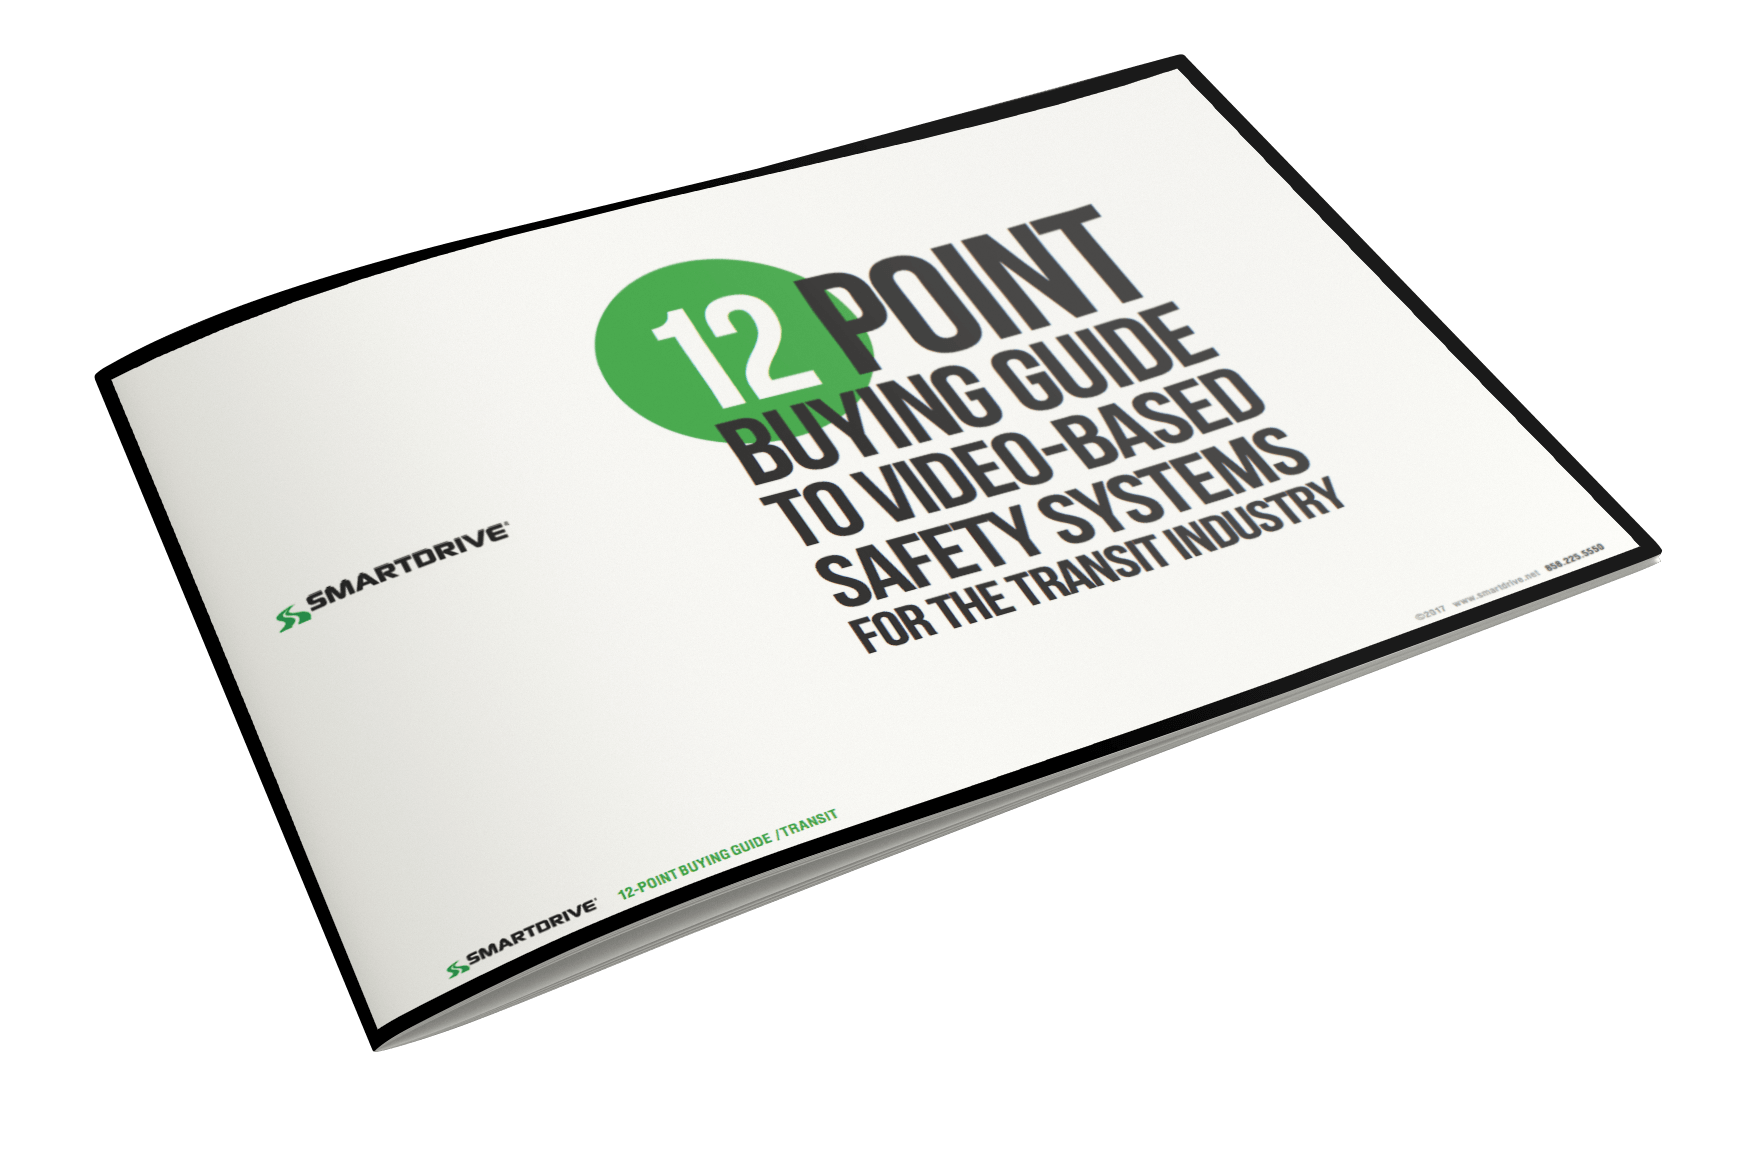 Download 12 Point Buying Guide For Bus Transit